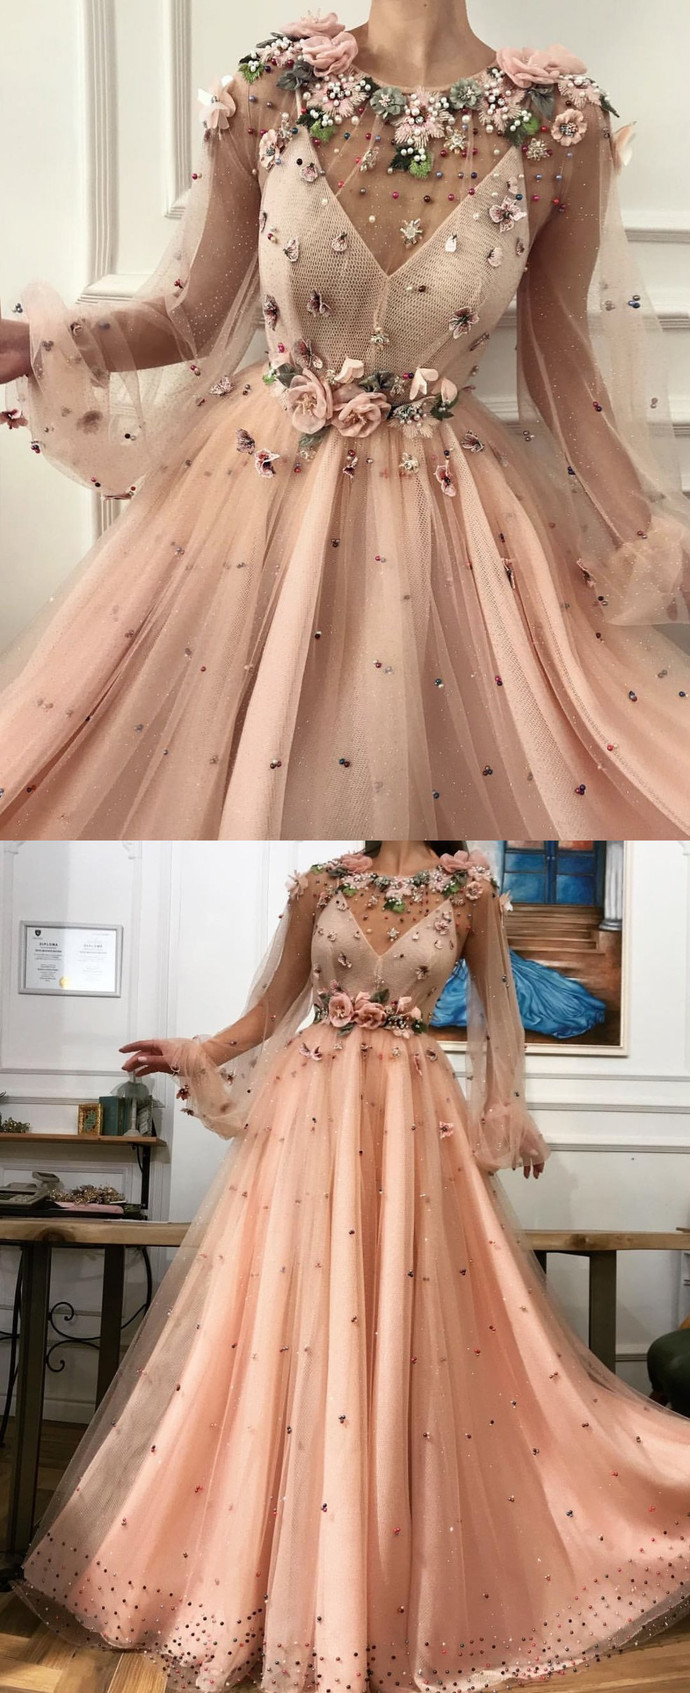 Illusion Champagne Flower Appliques Prom Dress,Long Sleeves Long Party Dress